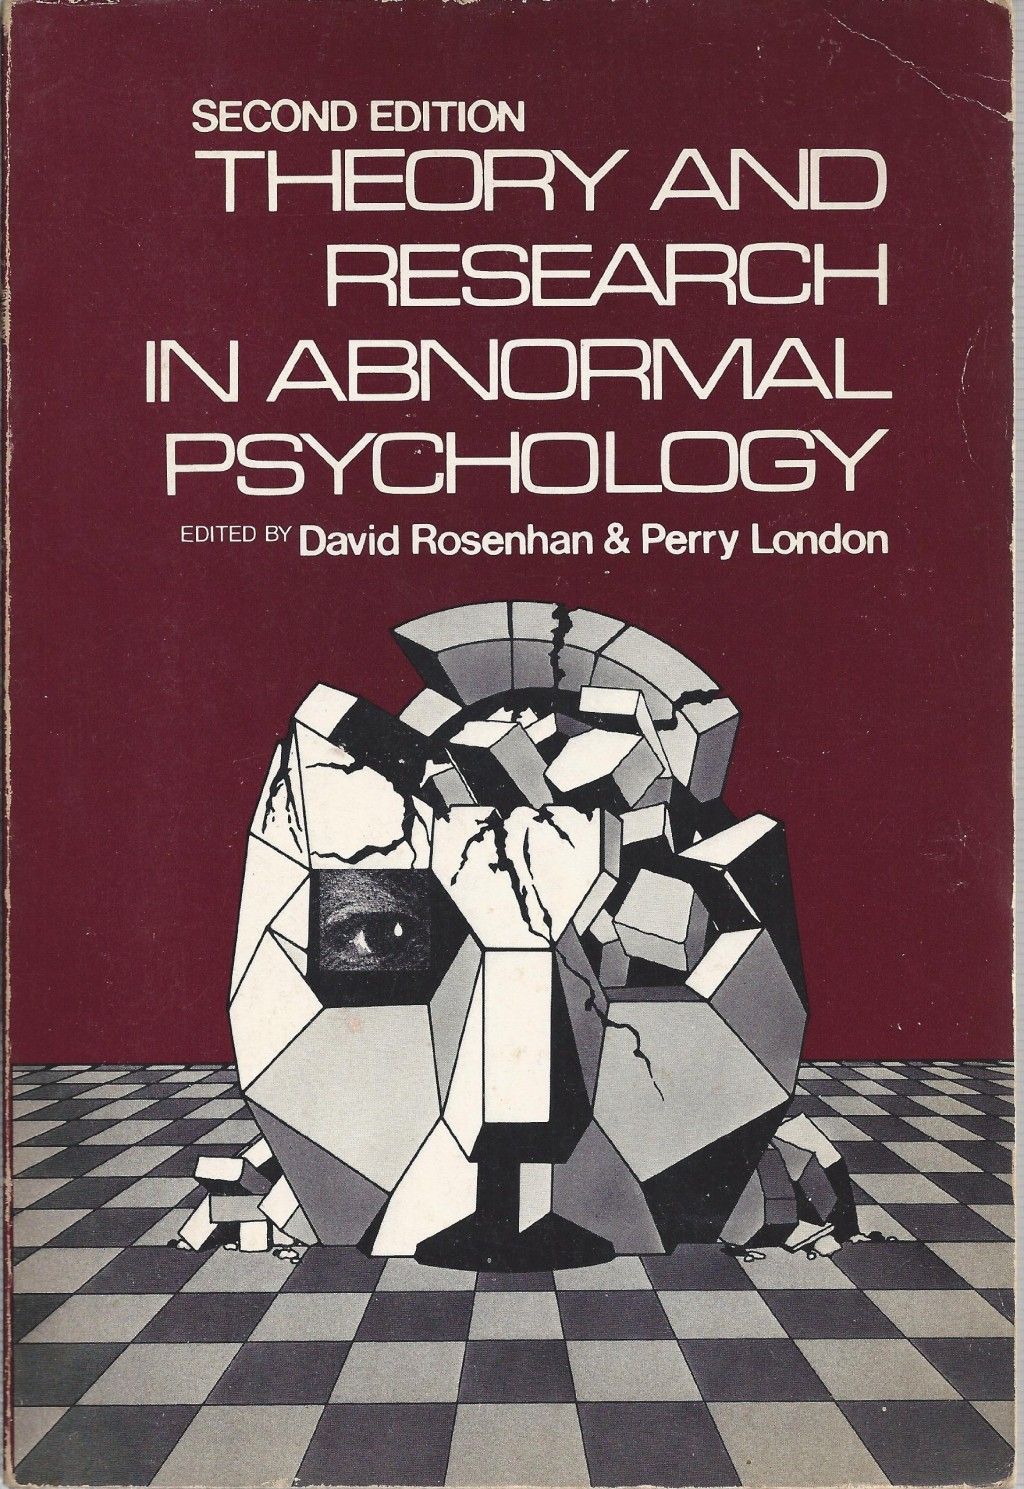 029 A1ibkjukrol Research Paper Abnormal Psychology Topics Unique For Large